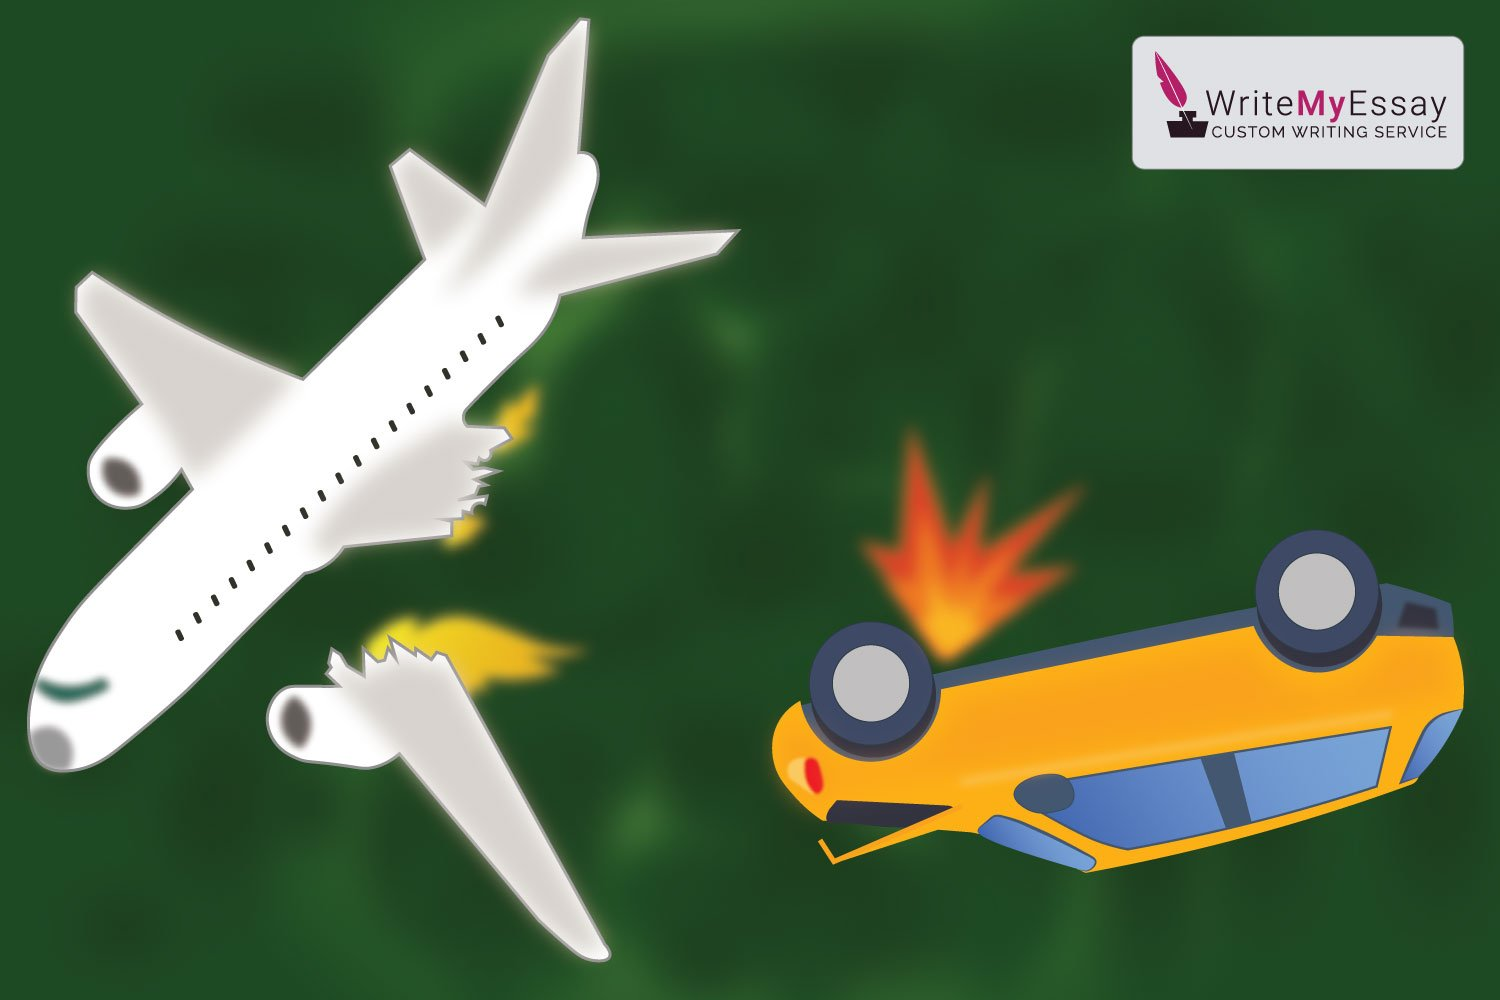 The risks of a car accident are much higher than an airplane crash essay sample